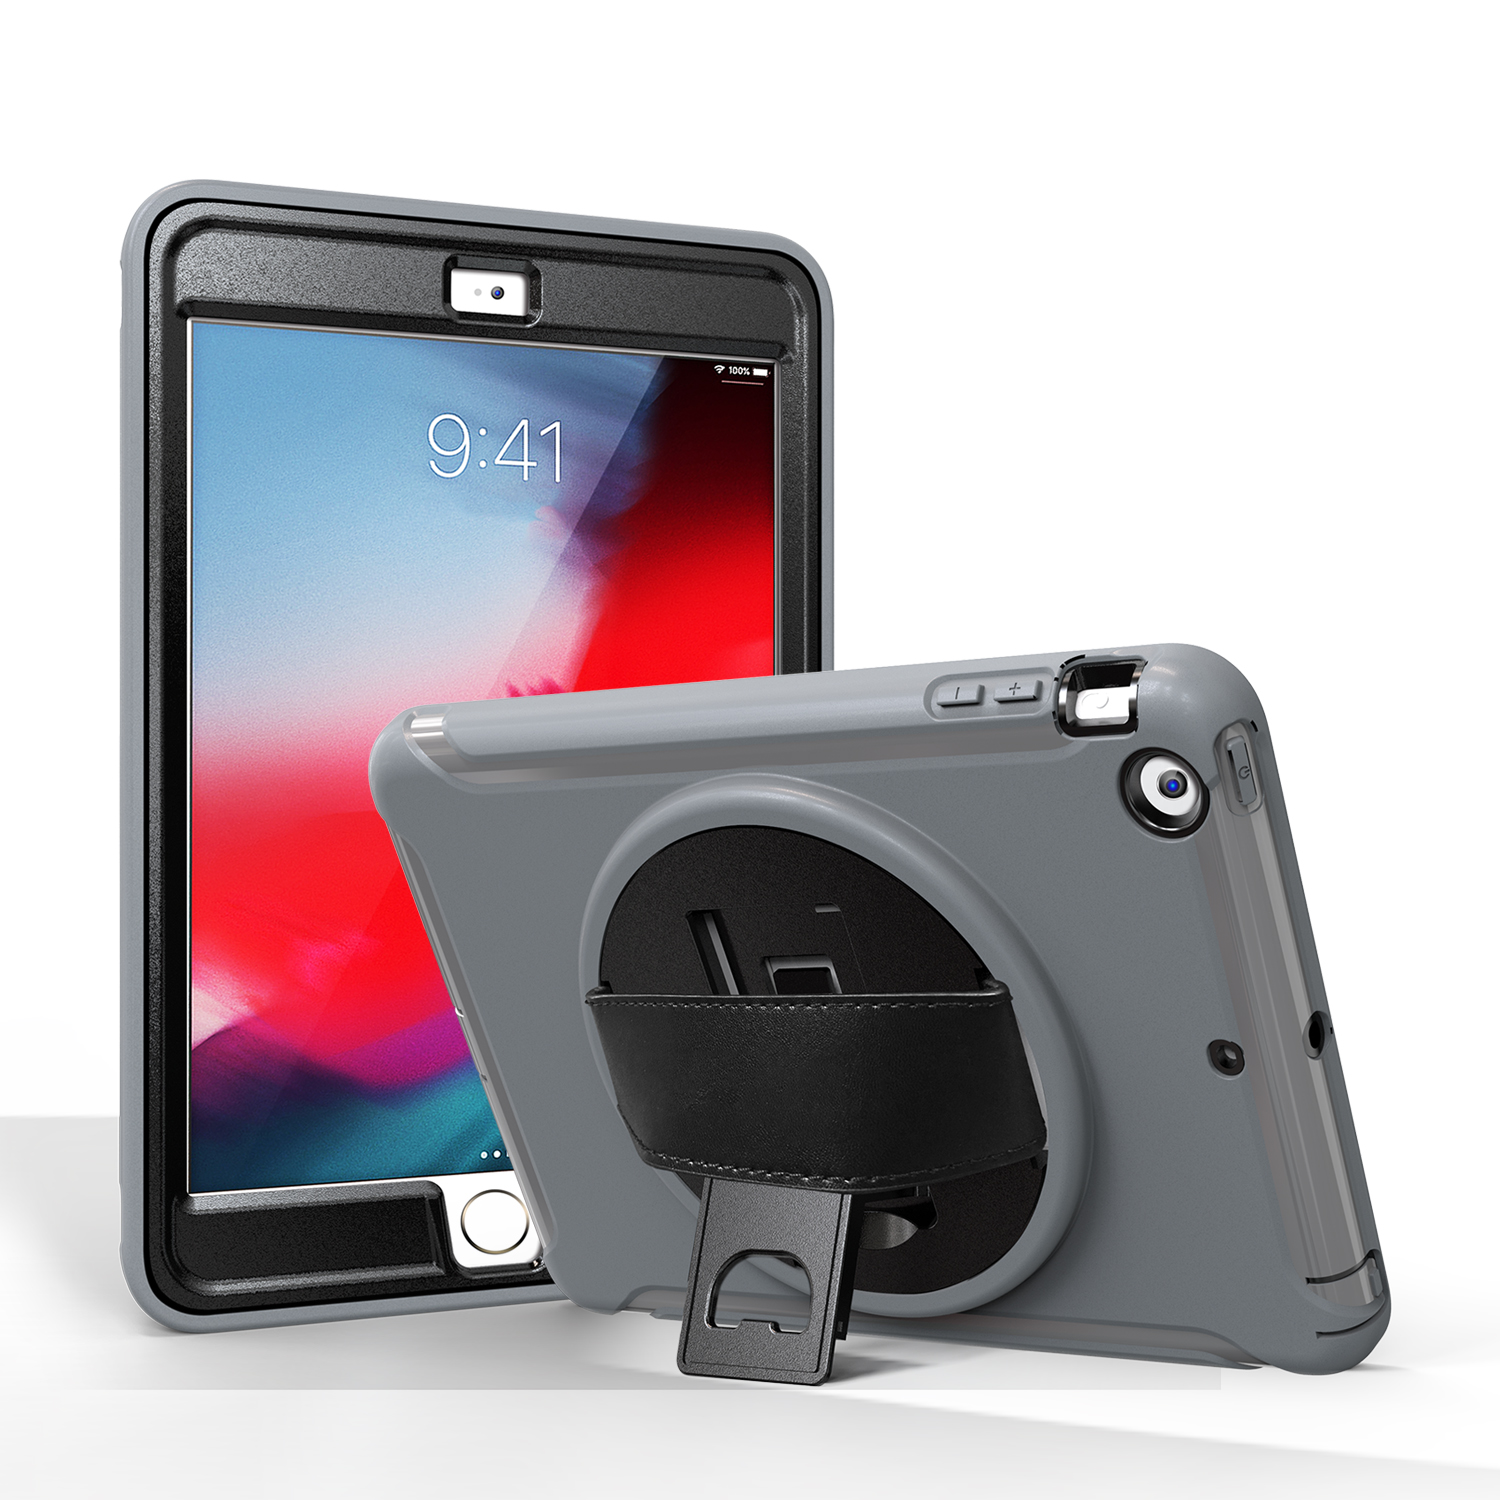 For ipad MINI 1 / 2 / 3 Wrist Handle Tri-proof Shockproof Dustproof Anti-fall Protective Cover with Bracket gray